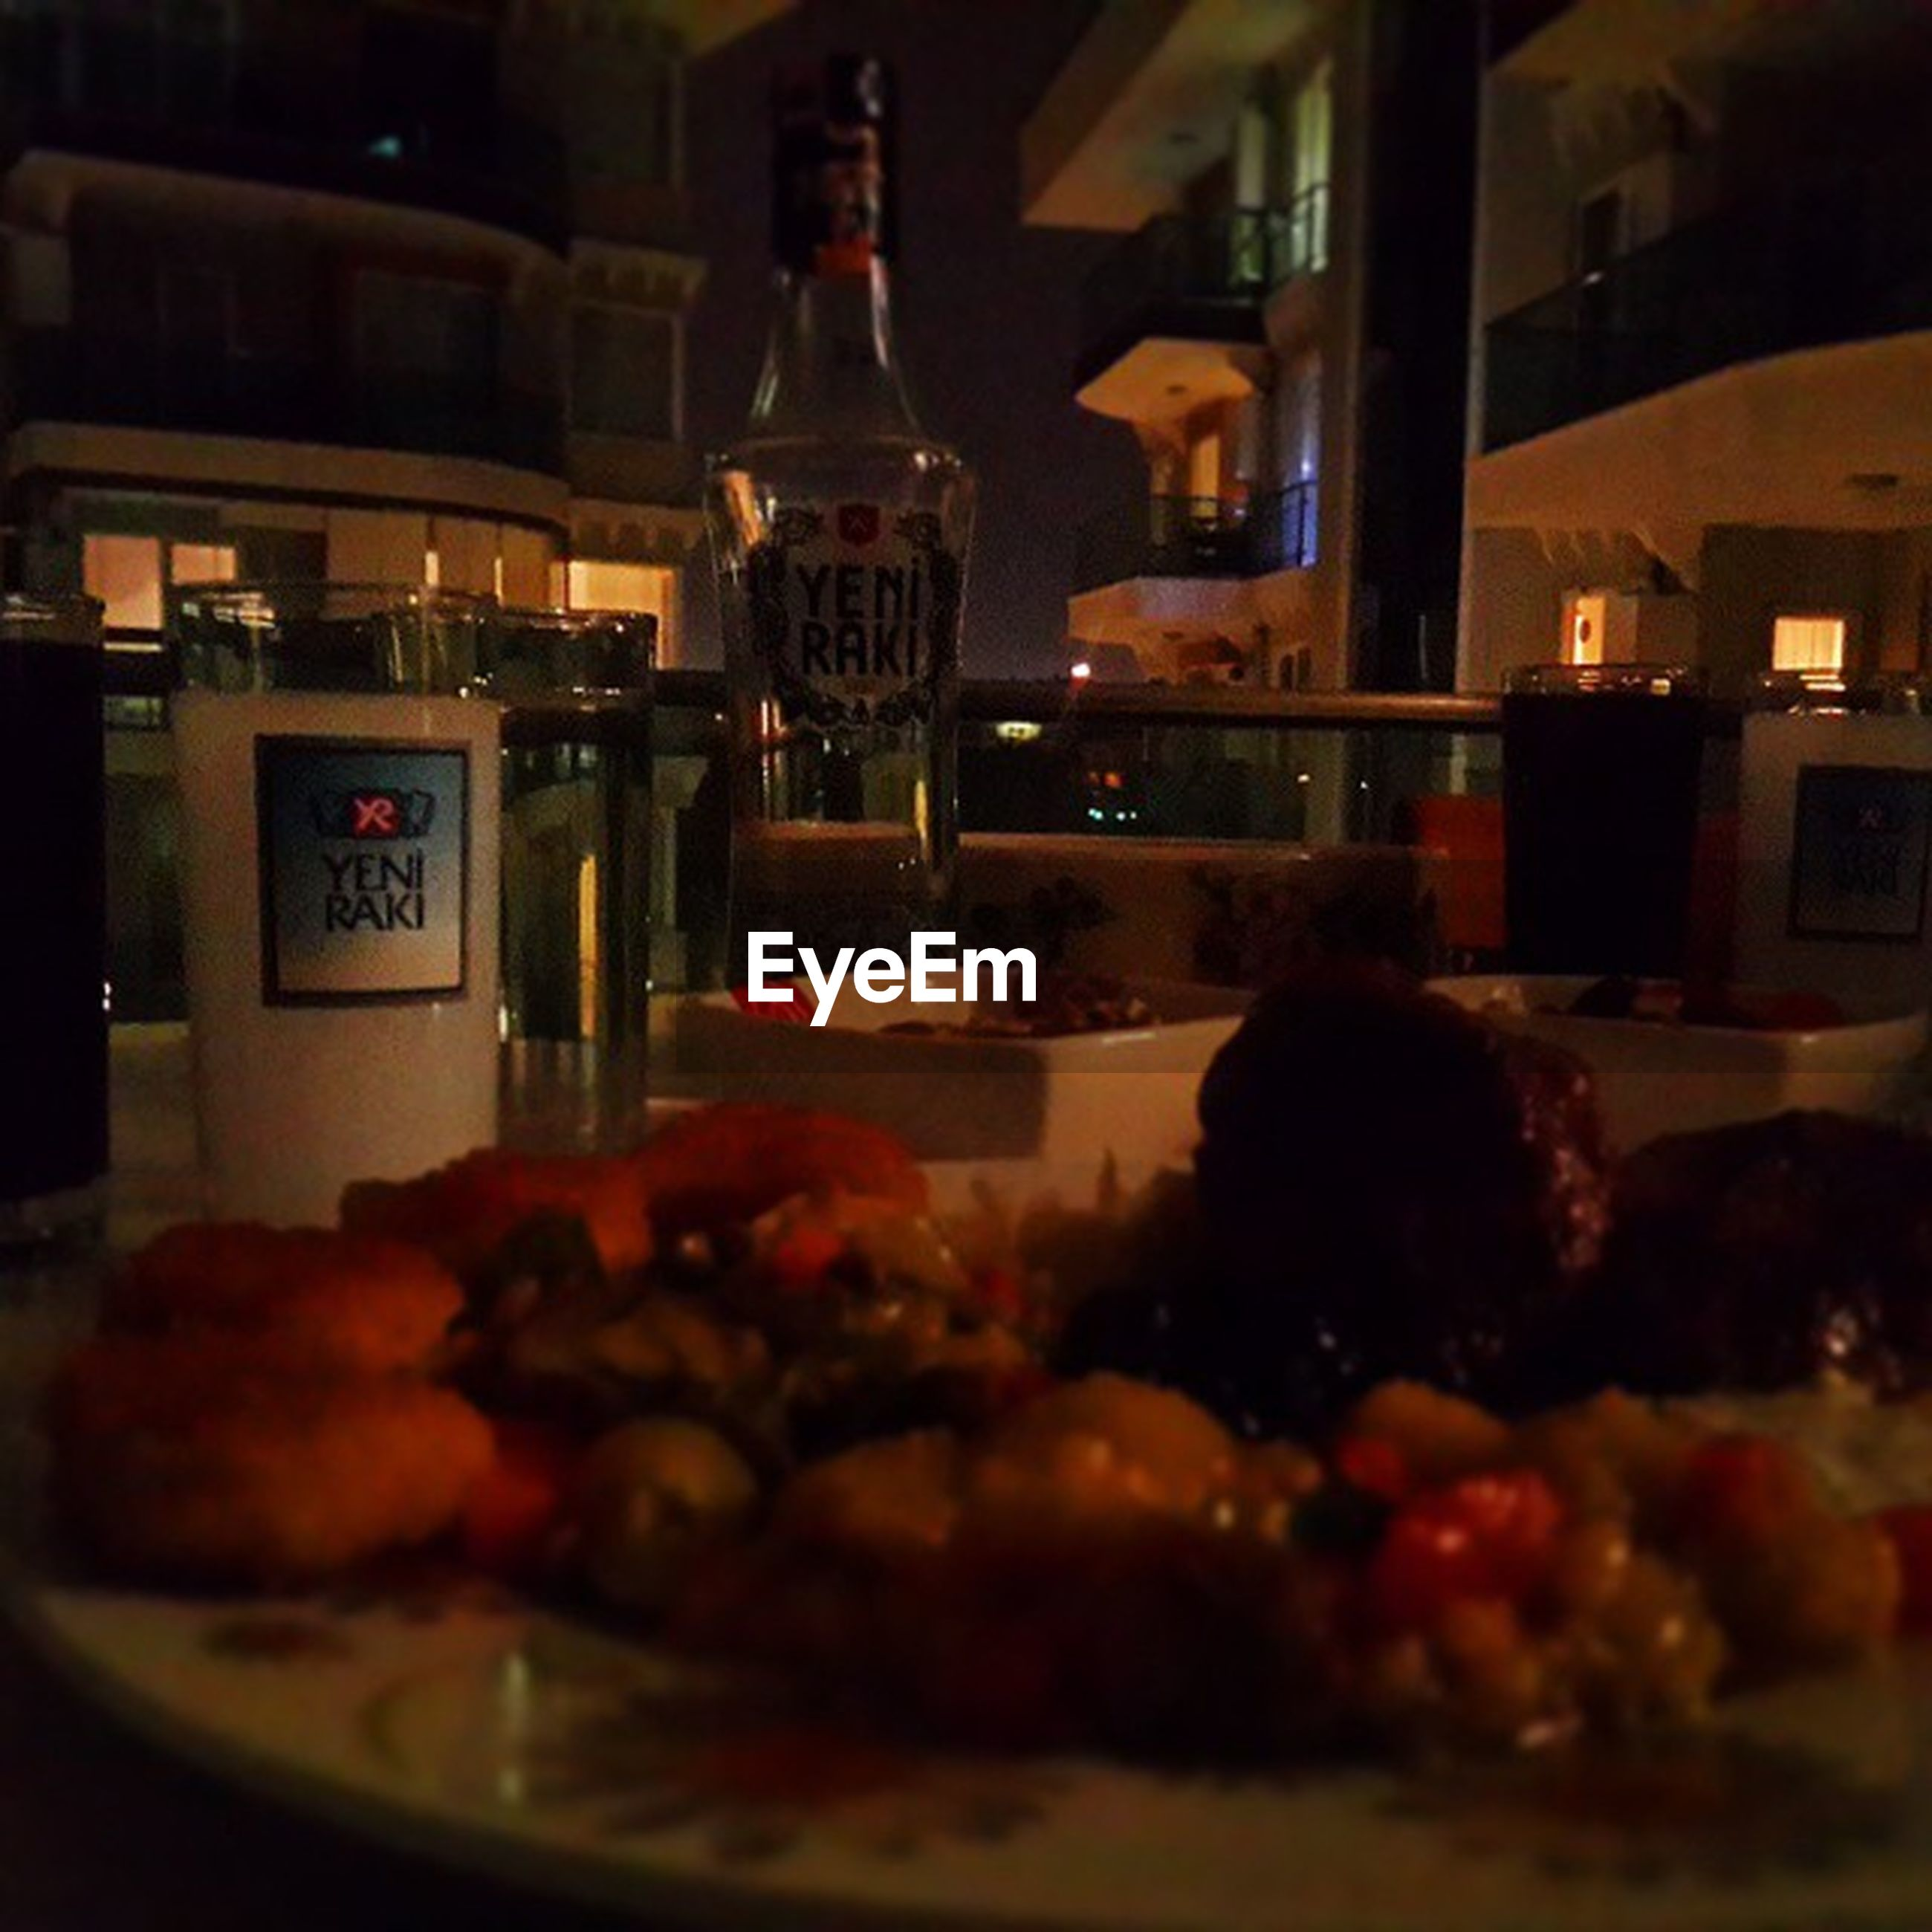 indoors, food and drink, food, illuminated, freshness, table, architecture, night, ready-to-eat, built structure, selective focus, restaurant, still life, unhealthy eating, text, indulgence, no people, sweet food, building exterior, close-up